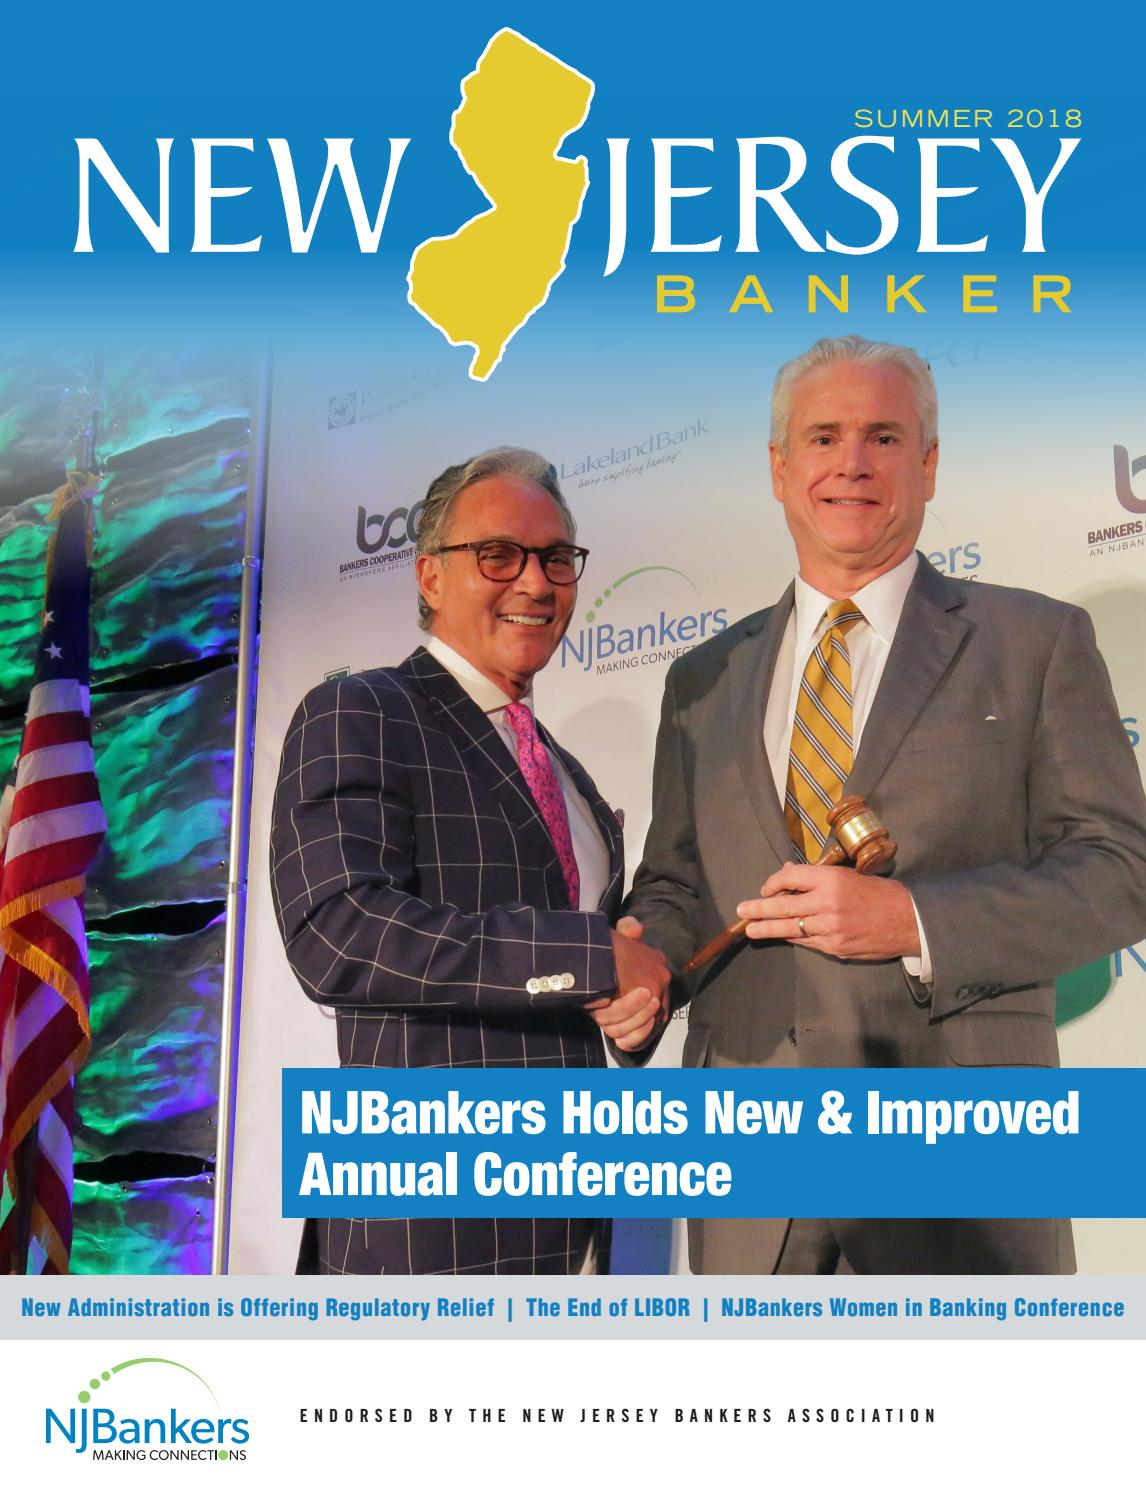 New Jersey Banker - Summer 2018 by ambizmedia - issuu 0c7747237